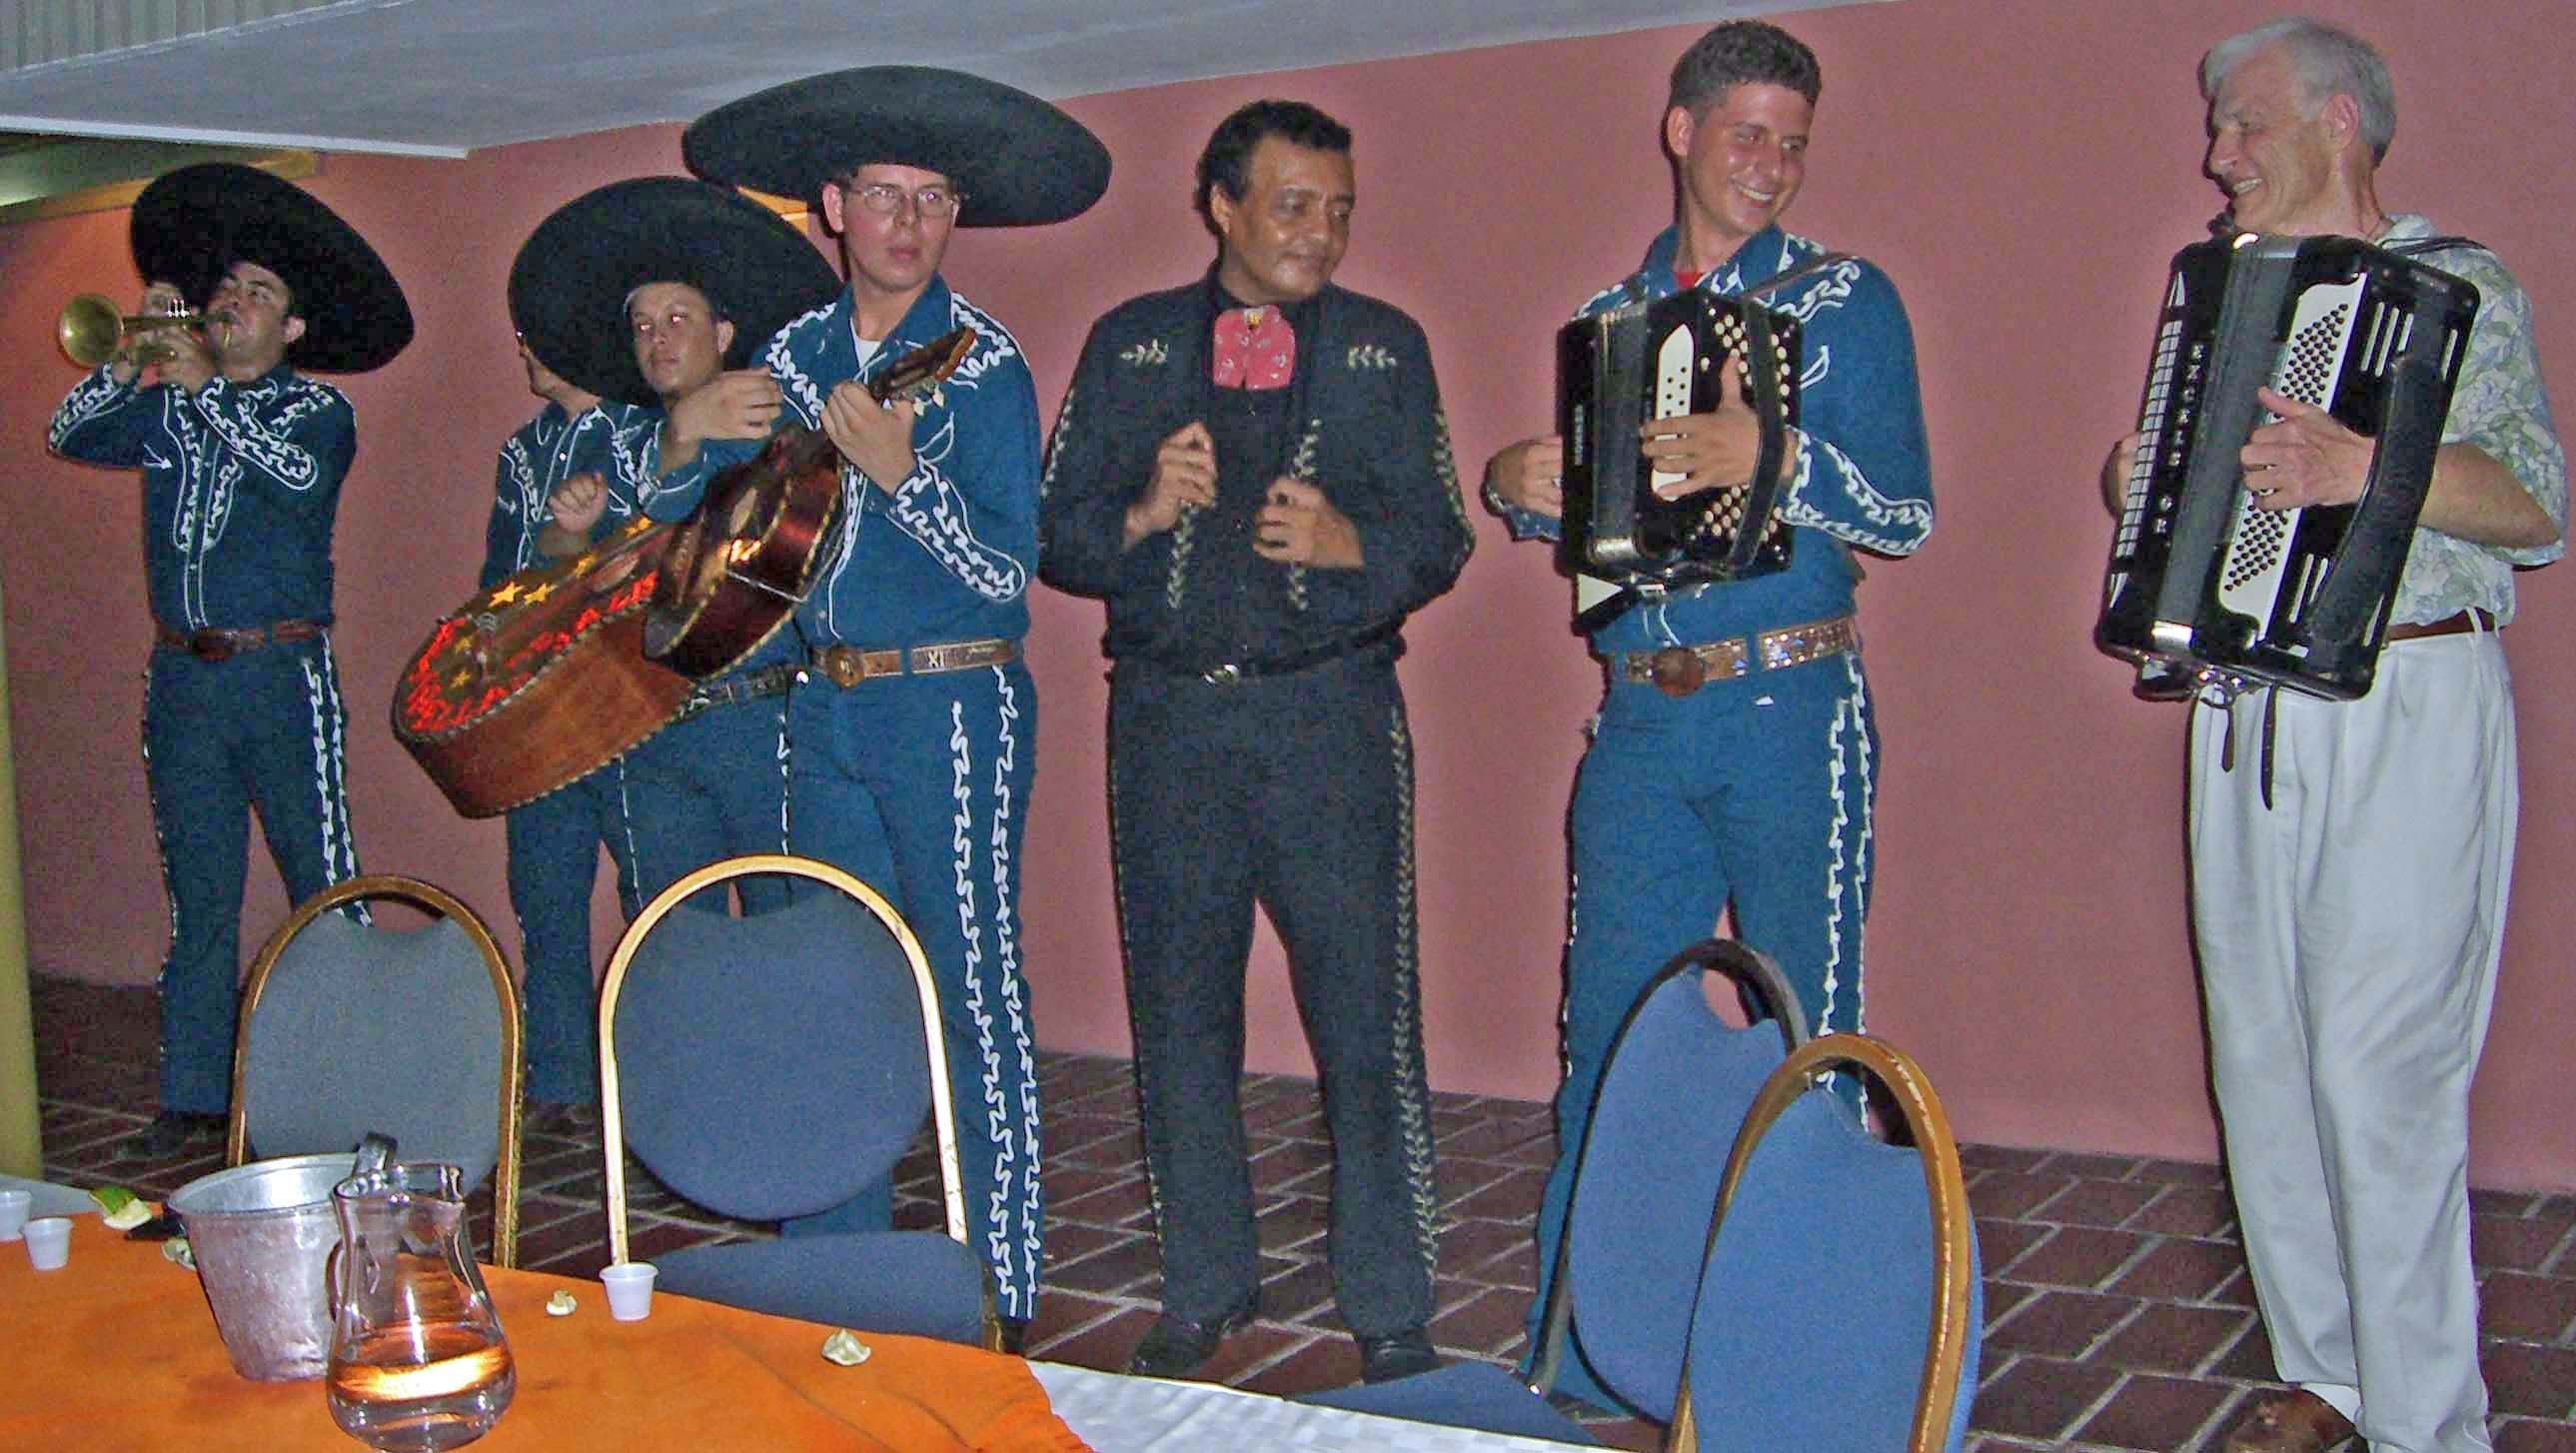 Description: C:\Users\Erik\Desktop\Mariachi.jpg